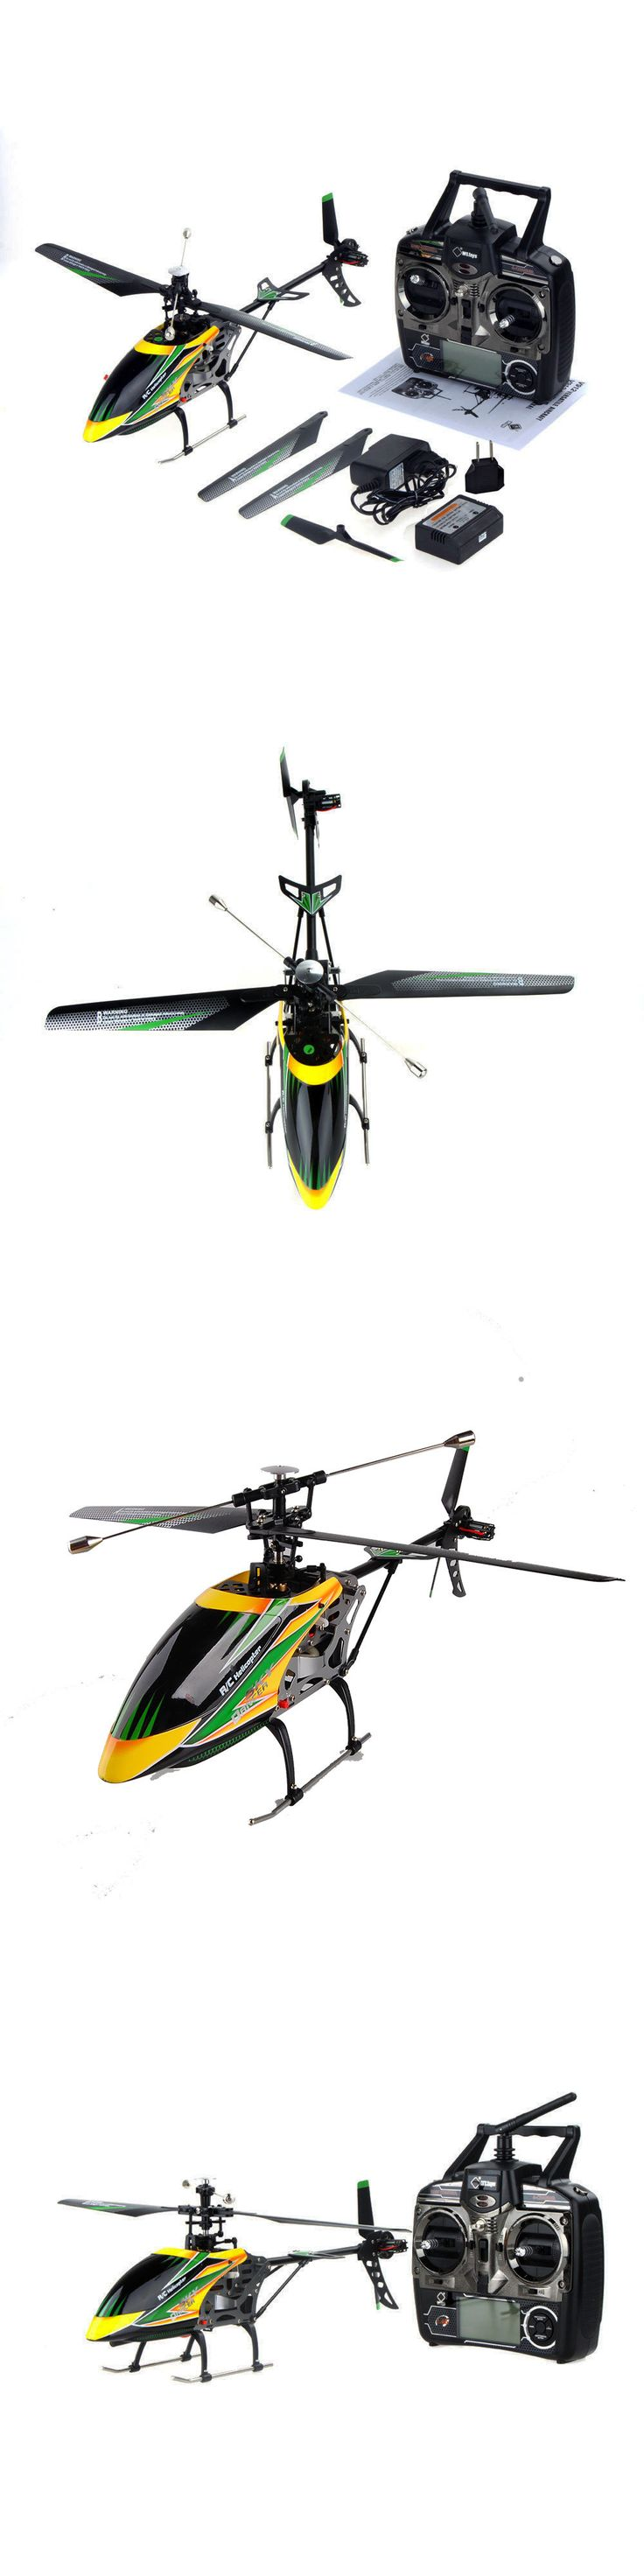 Other RC Model Vehicles and Kits 182186: Wltoys V912 4Ch 2.4Ghz Single Blade Alloy Remote Control Rc Helicopter Gyro Rtf -> BUY IT NOW ONLY: $53.2 on eBay!